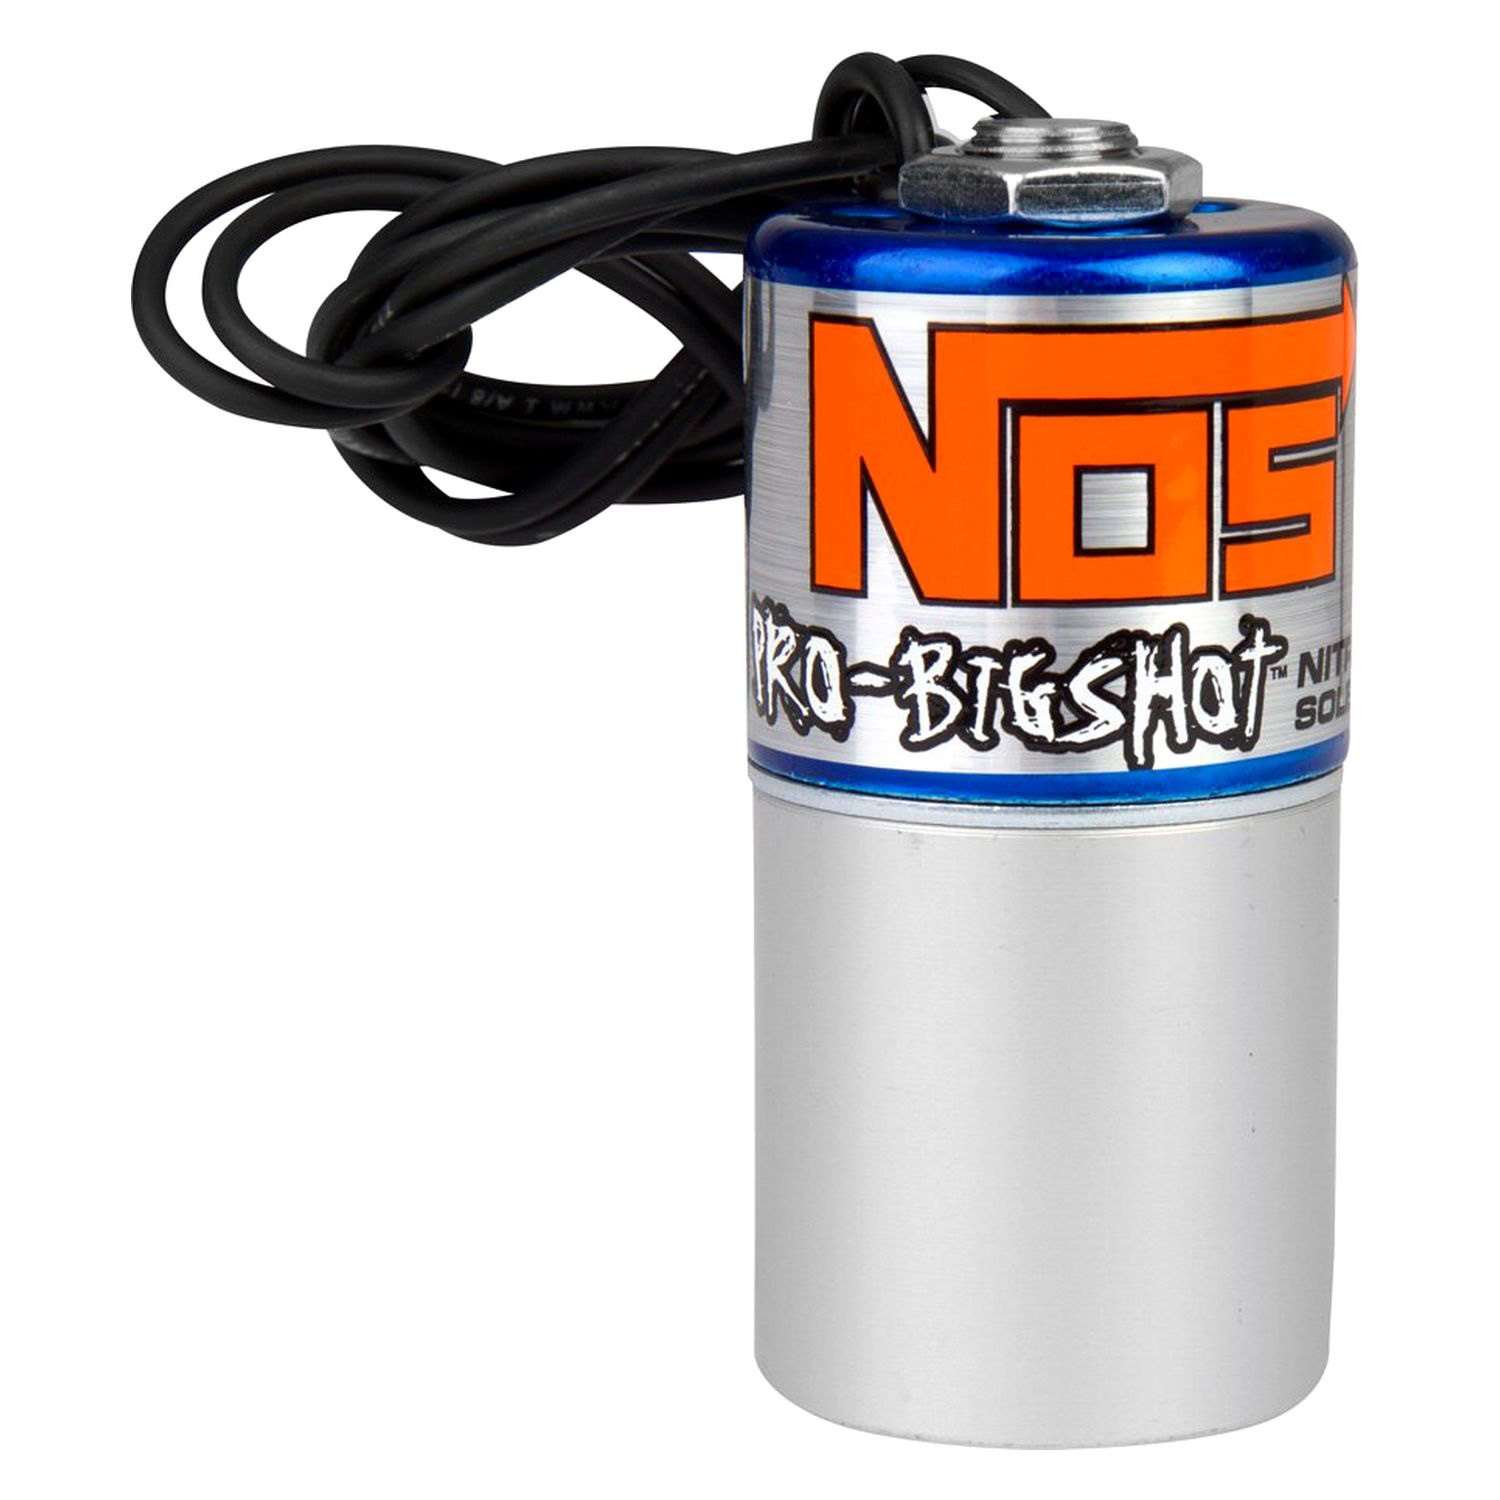 nitrous oxide Nitric oxide is a gas that is inhaled it works by relaxing smooth muscle to widen (dilate) blood vessels, especially in the lungs nitric oxide is used together with a breathing machine (ventilator) to treat respiratory failure in premature babies your baby will receive this medication in a .